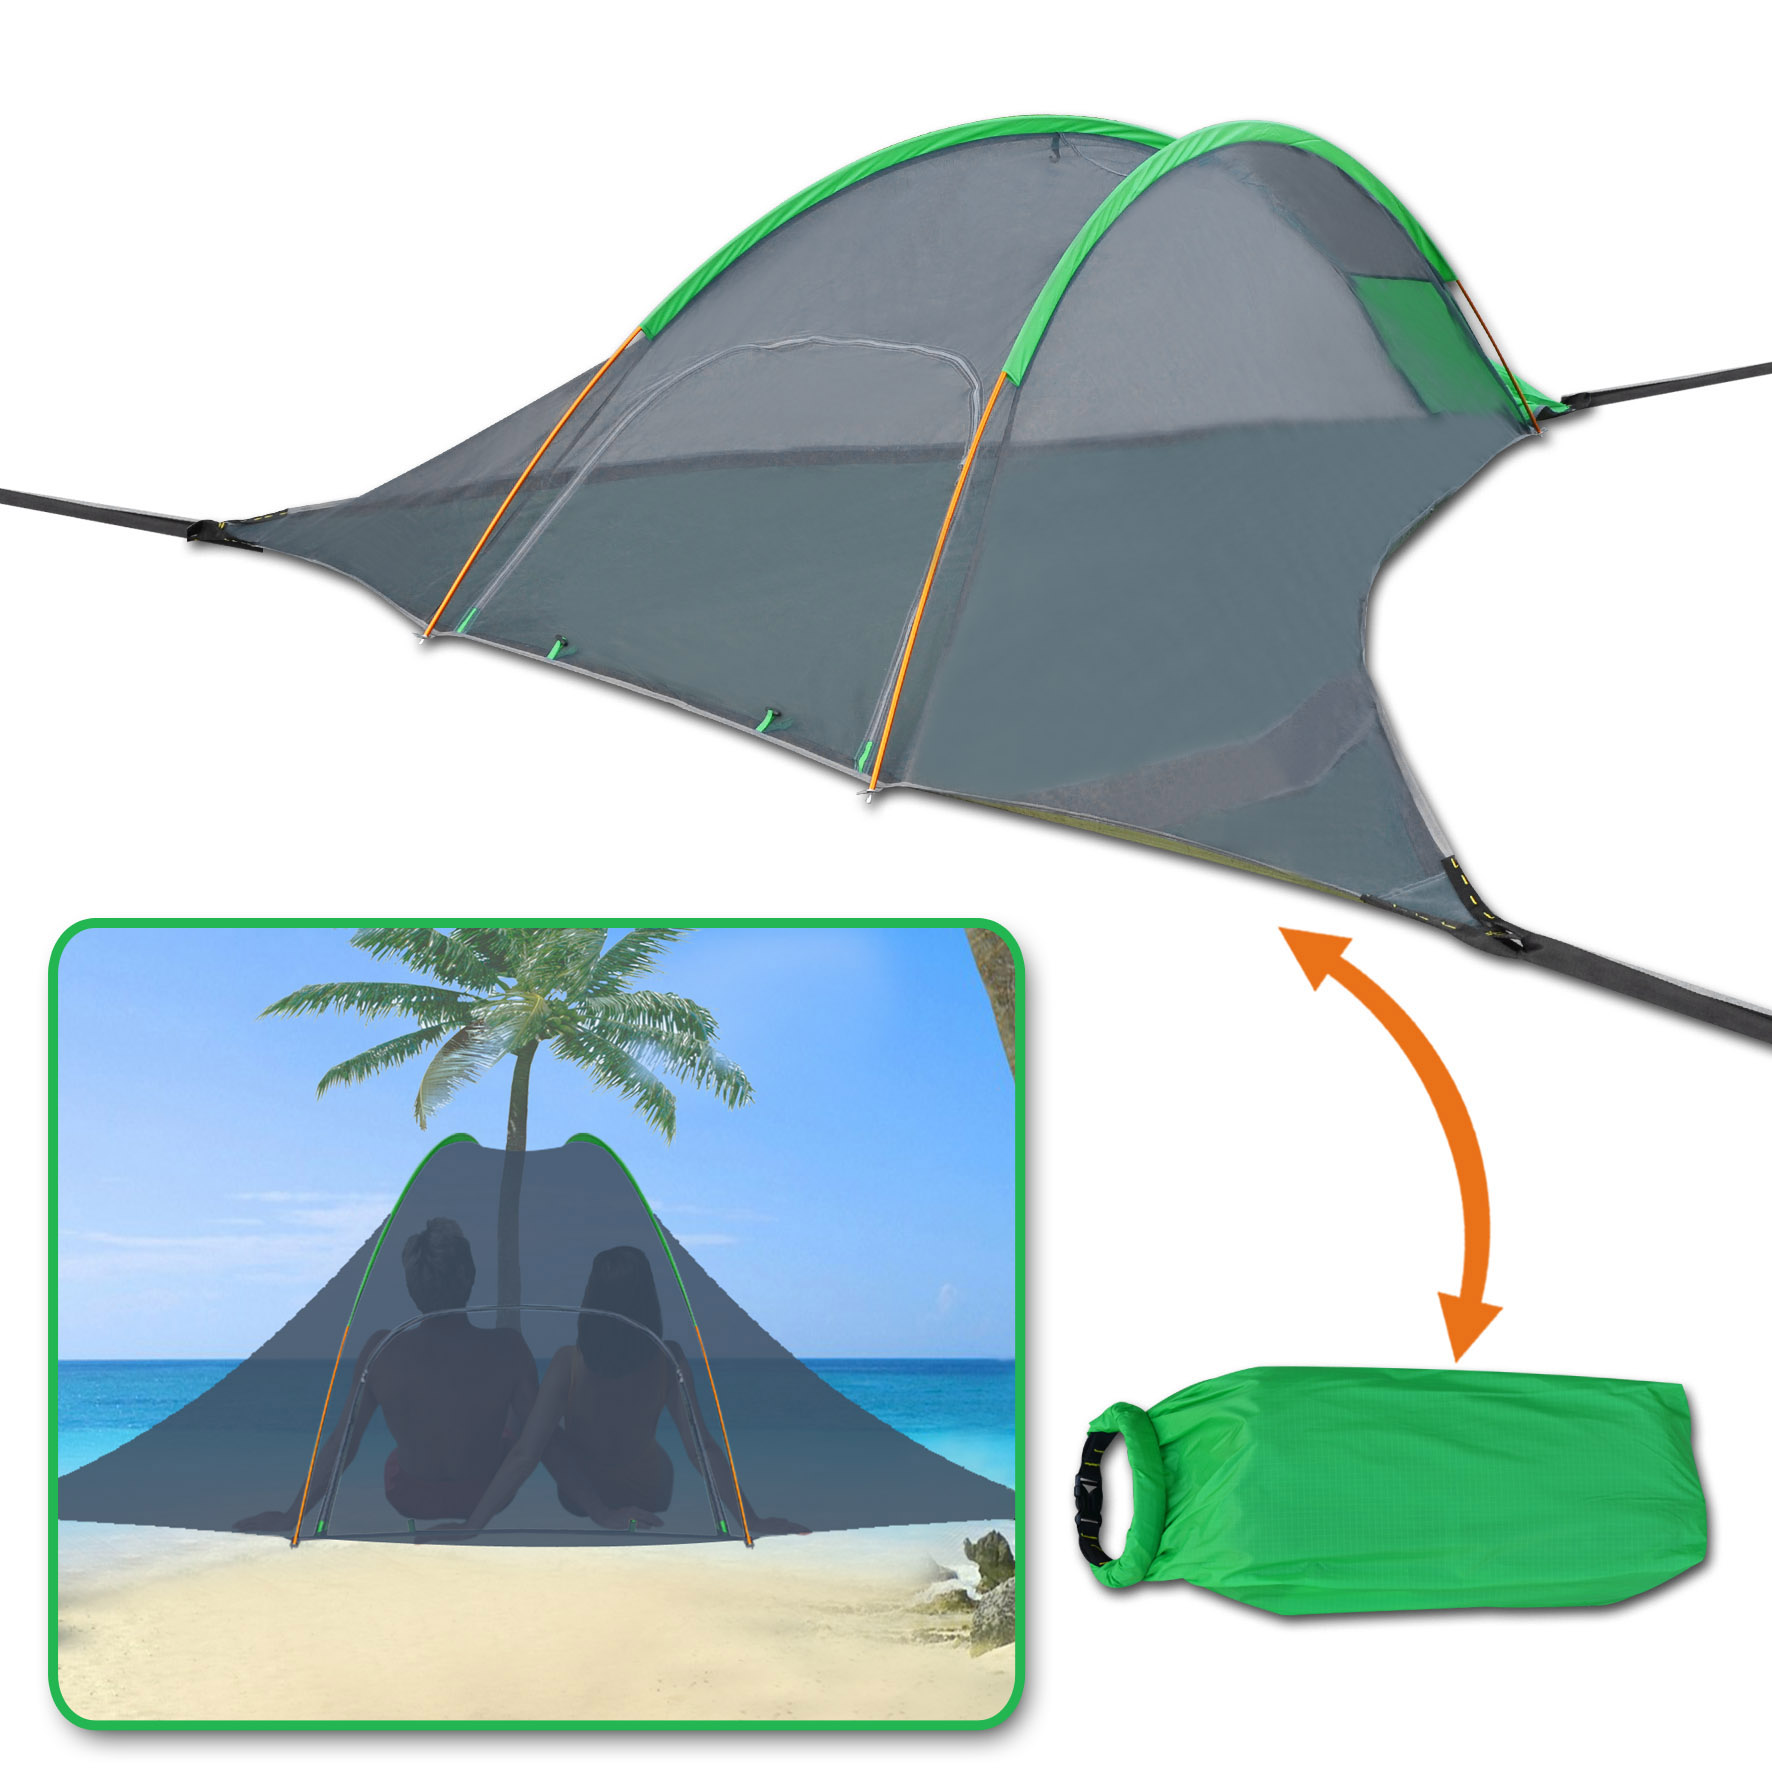 Sunrise Portable Hanging Camping Tree House Tent Outdoor Traveling Hammock W Mosquito Net, Carry Bag Green